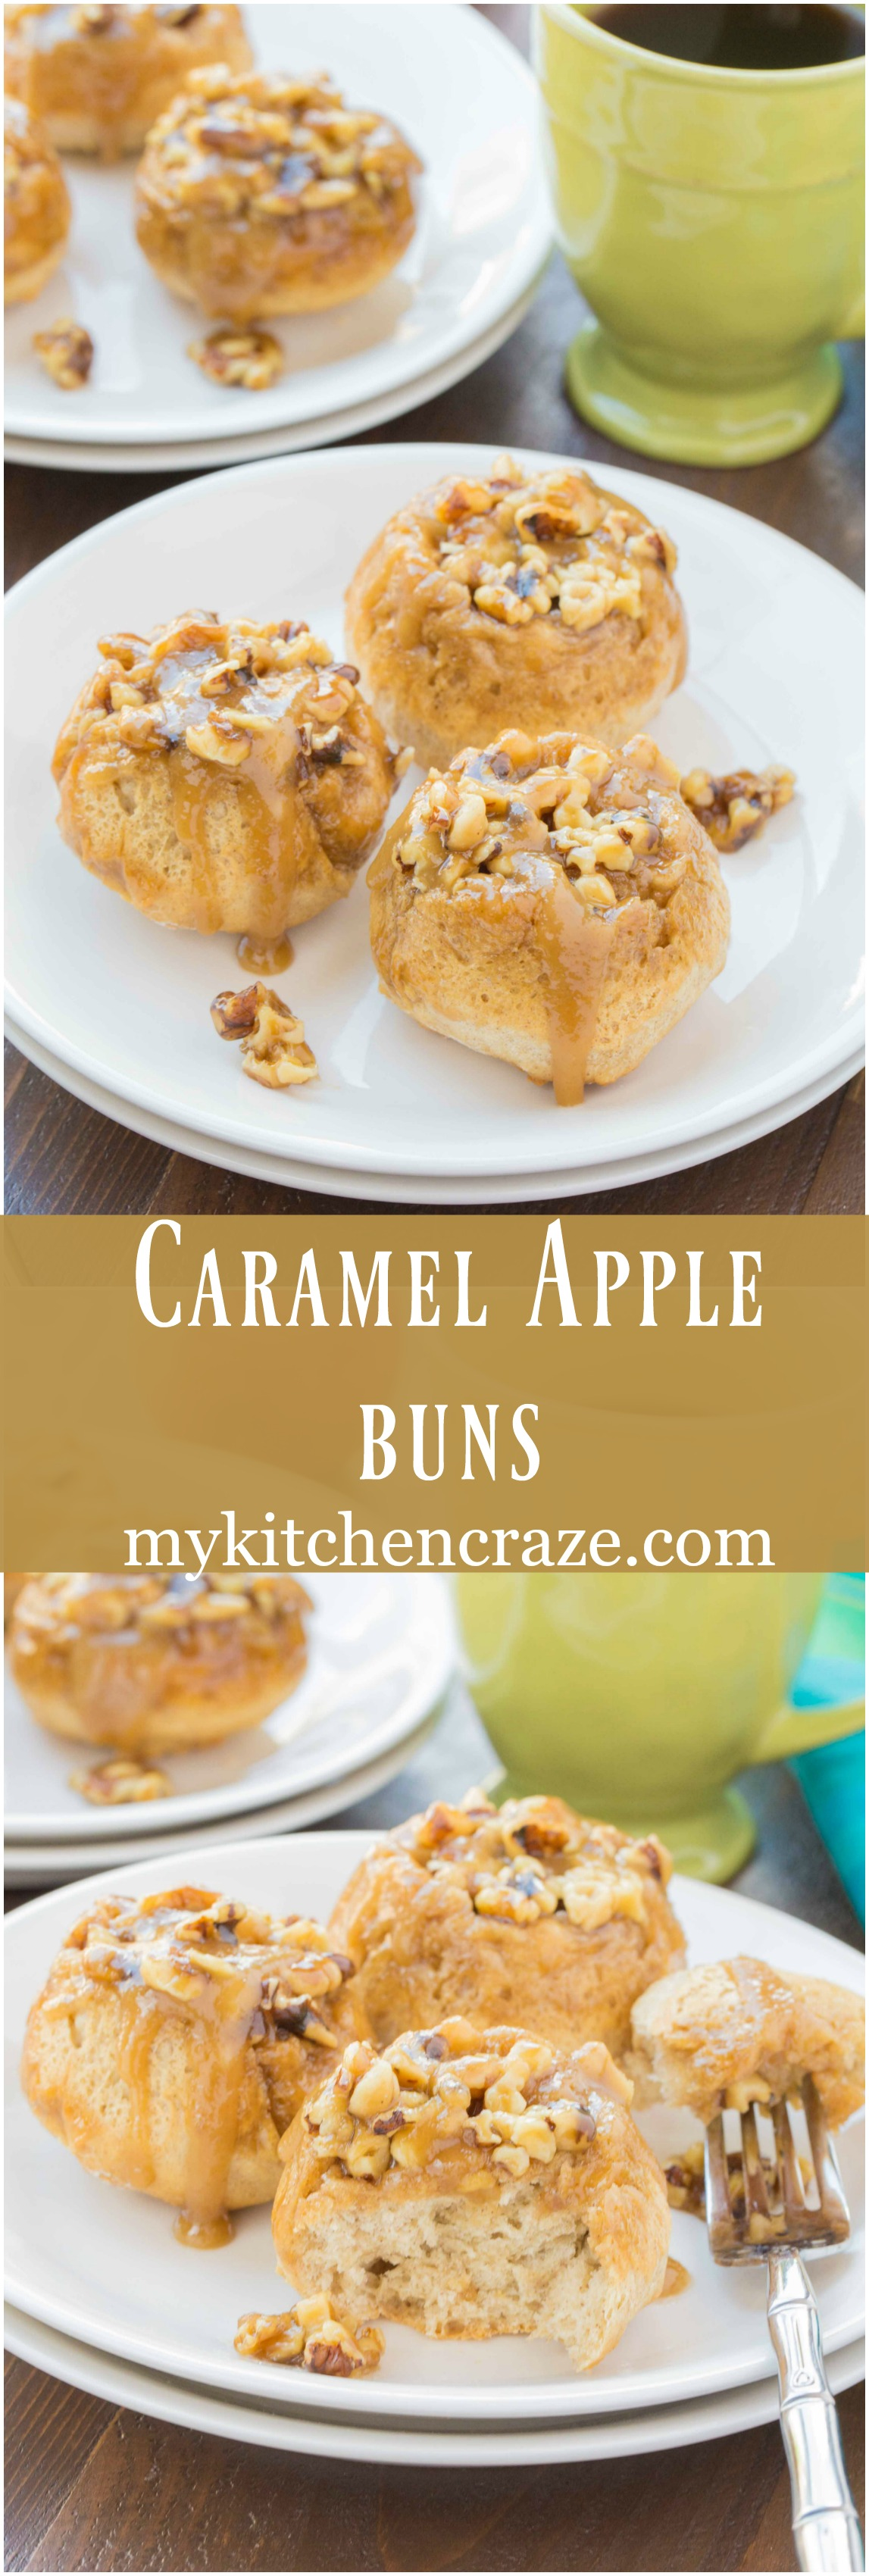 Caramel Apple Buns ~ mykitchencraze.com